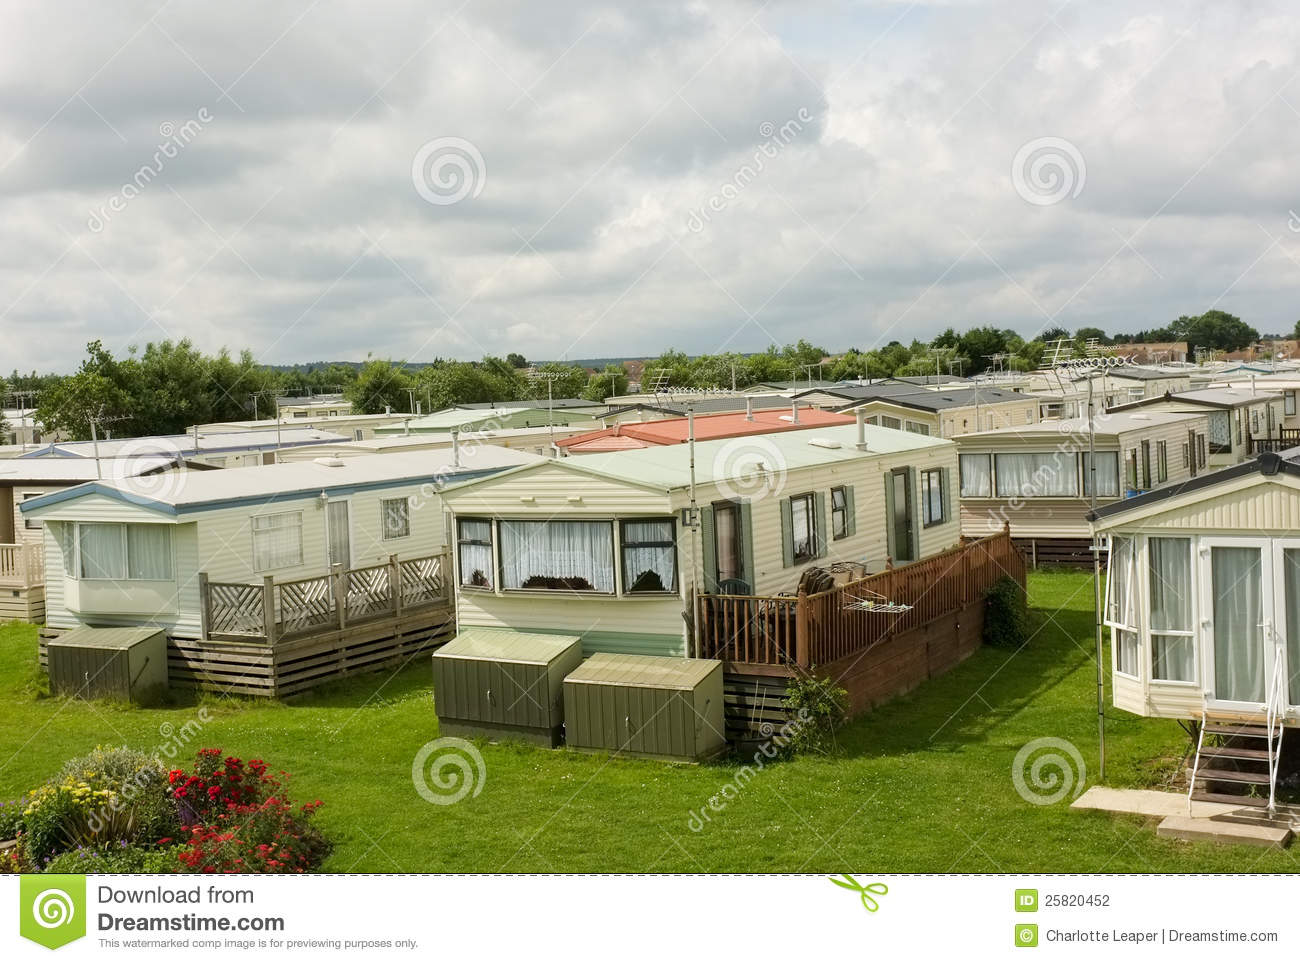 Balconies Camp Caravan Caravans England Gardens Holiday Homes Mobile Park